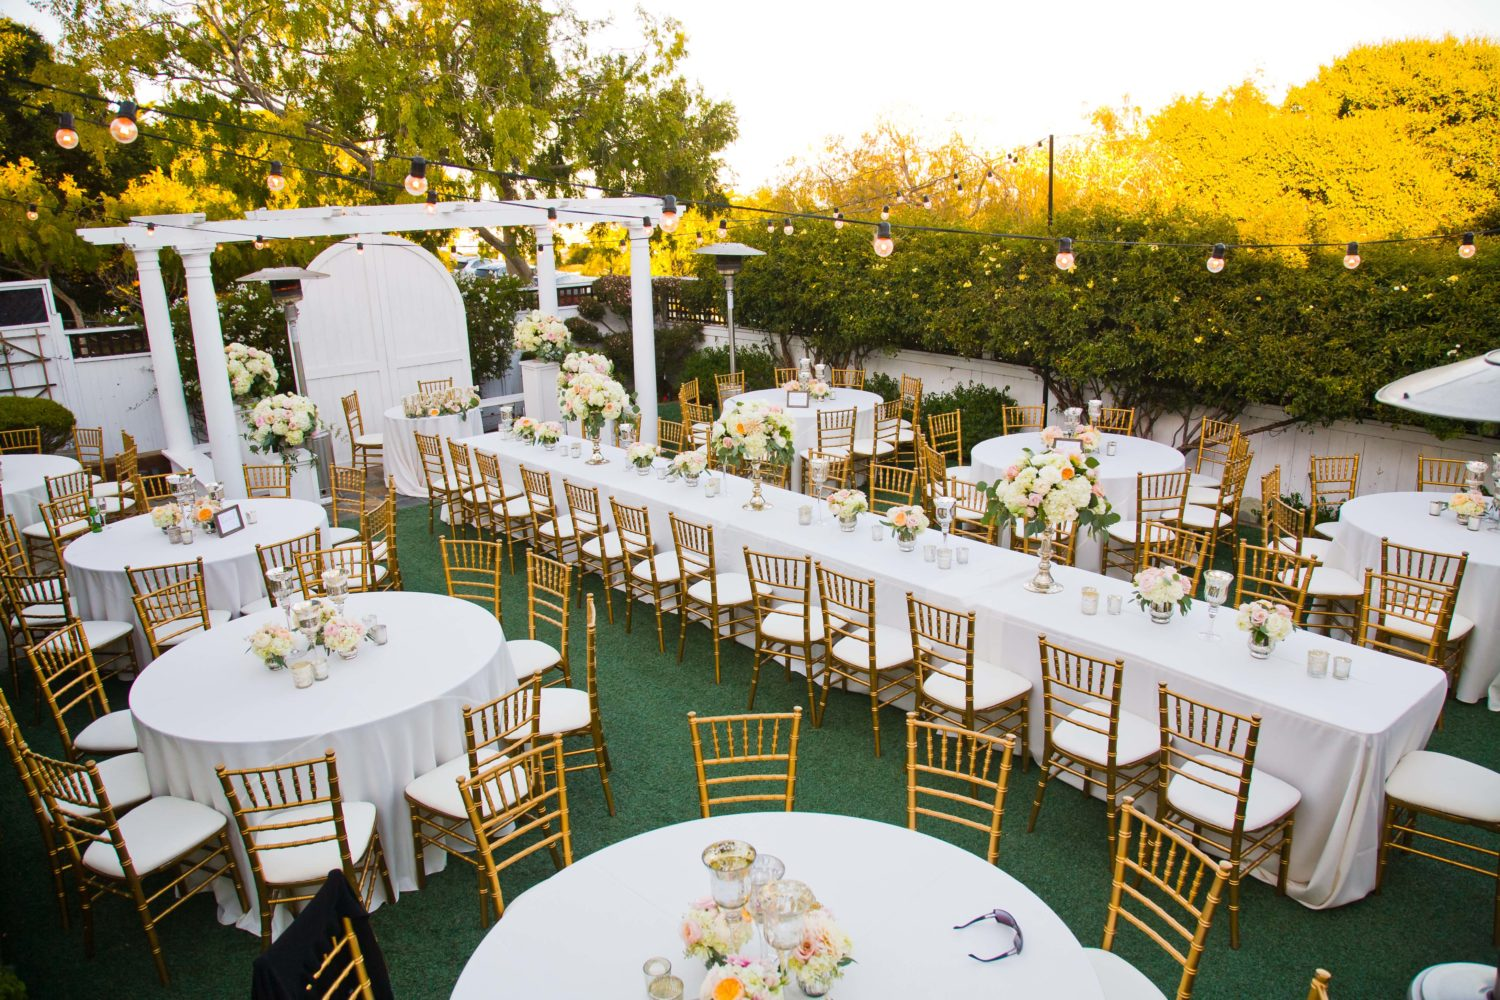 Garden Reception Table Set-up at The Perry House Wedding Venue